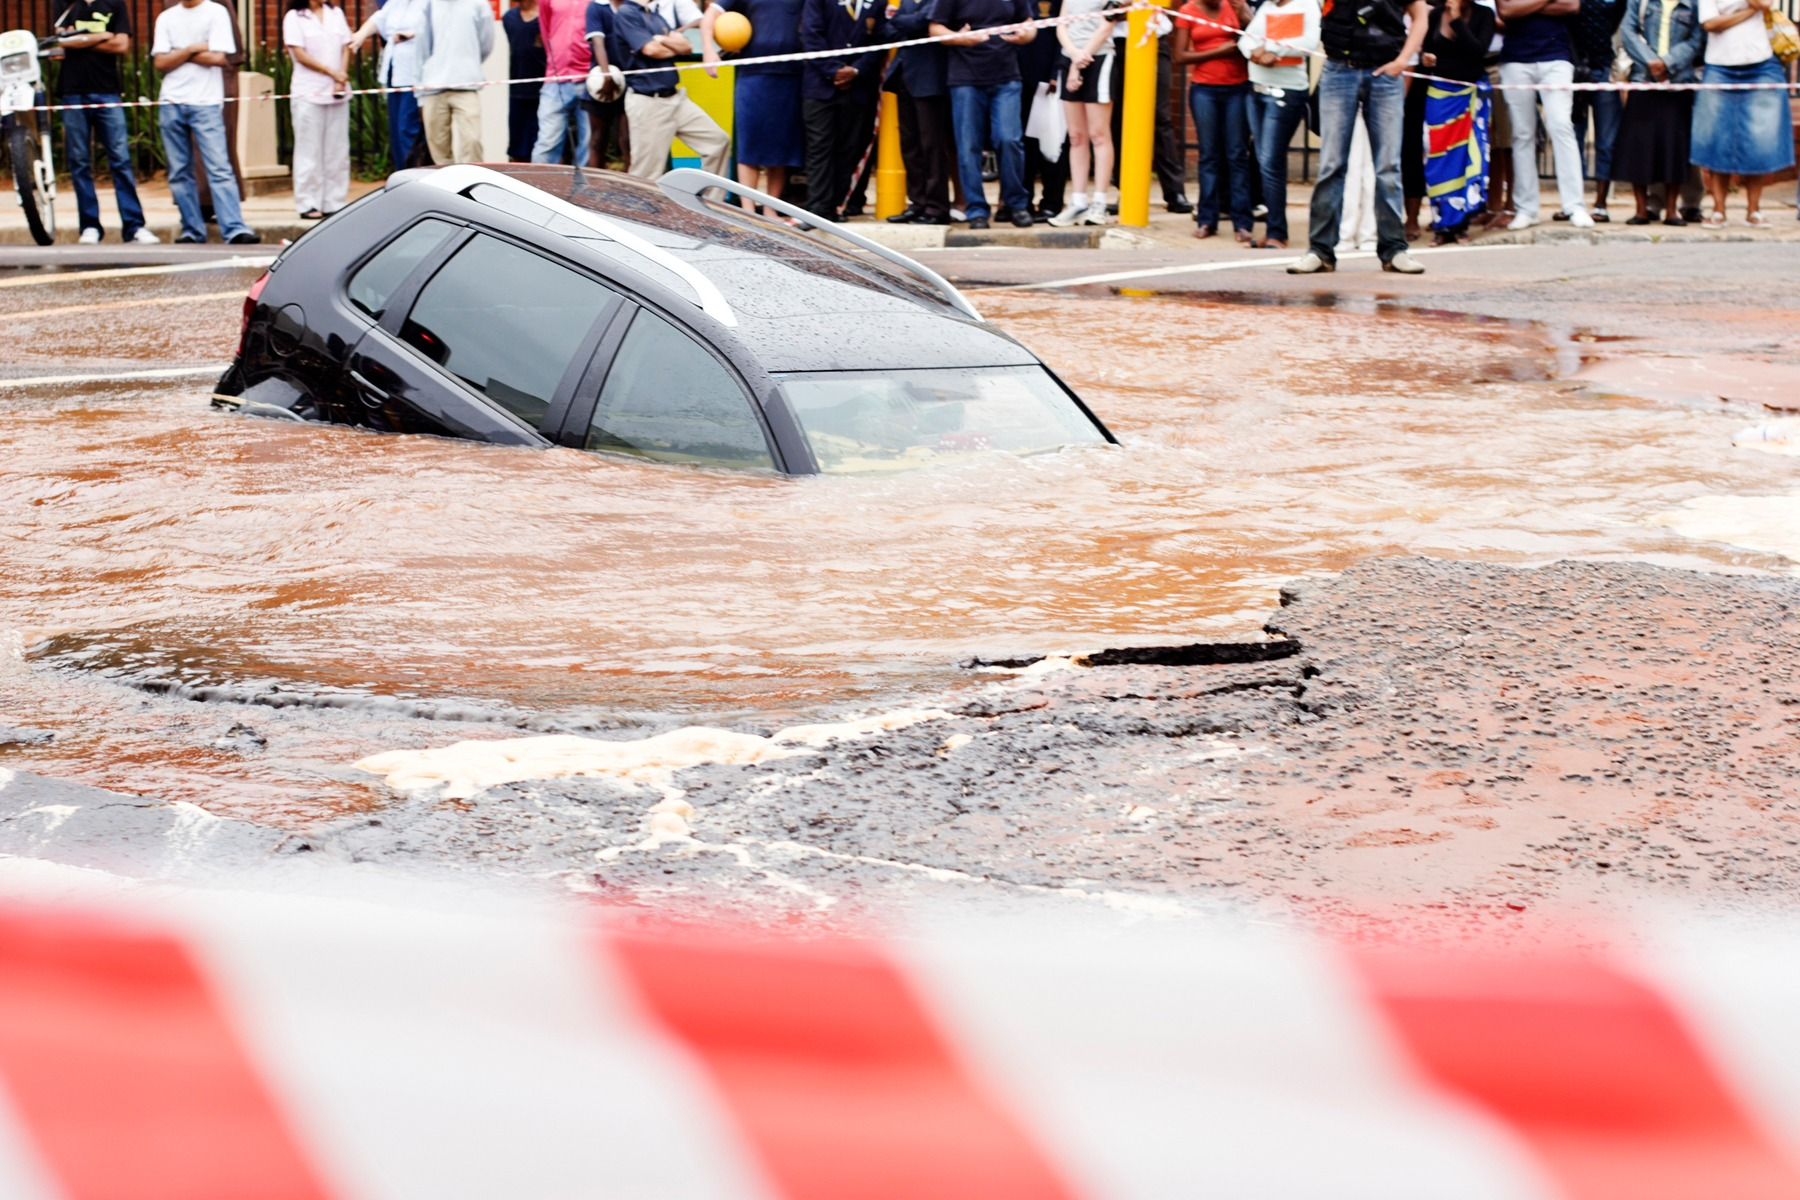 SUV is submerged in water in a large pothole